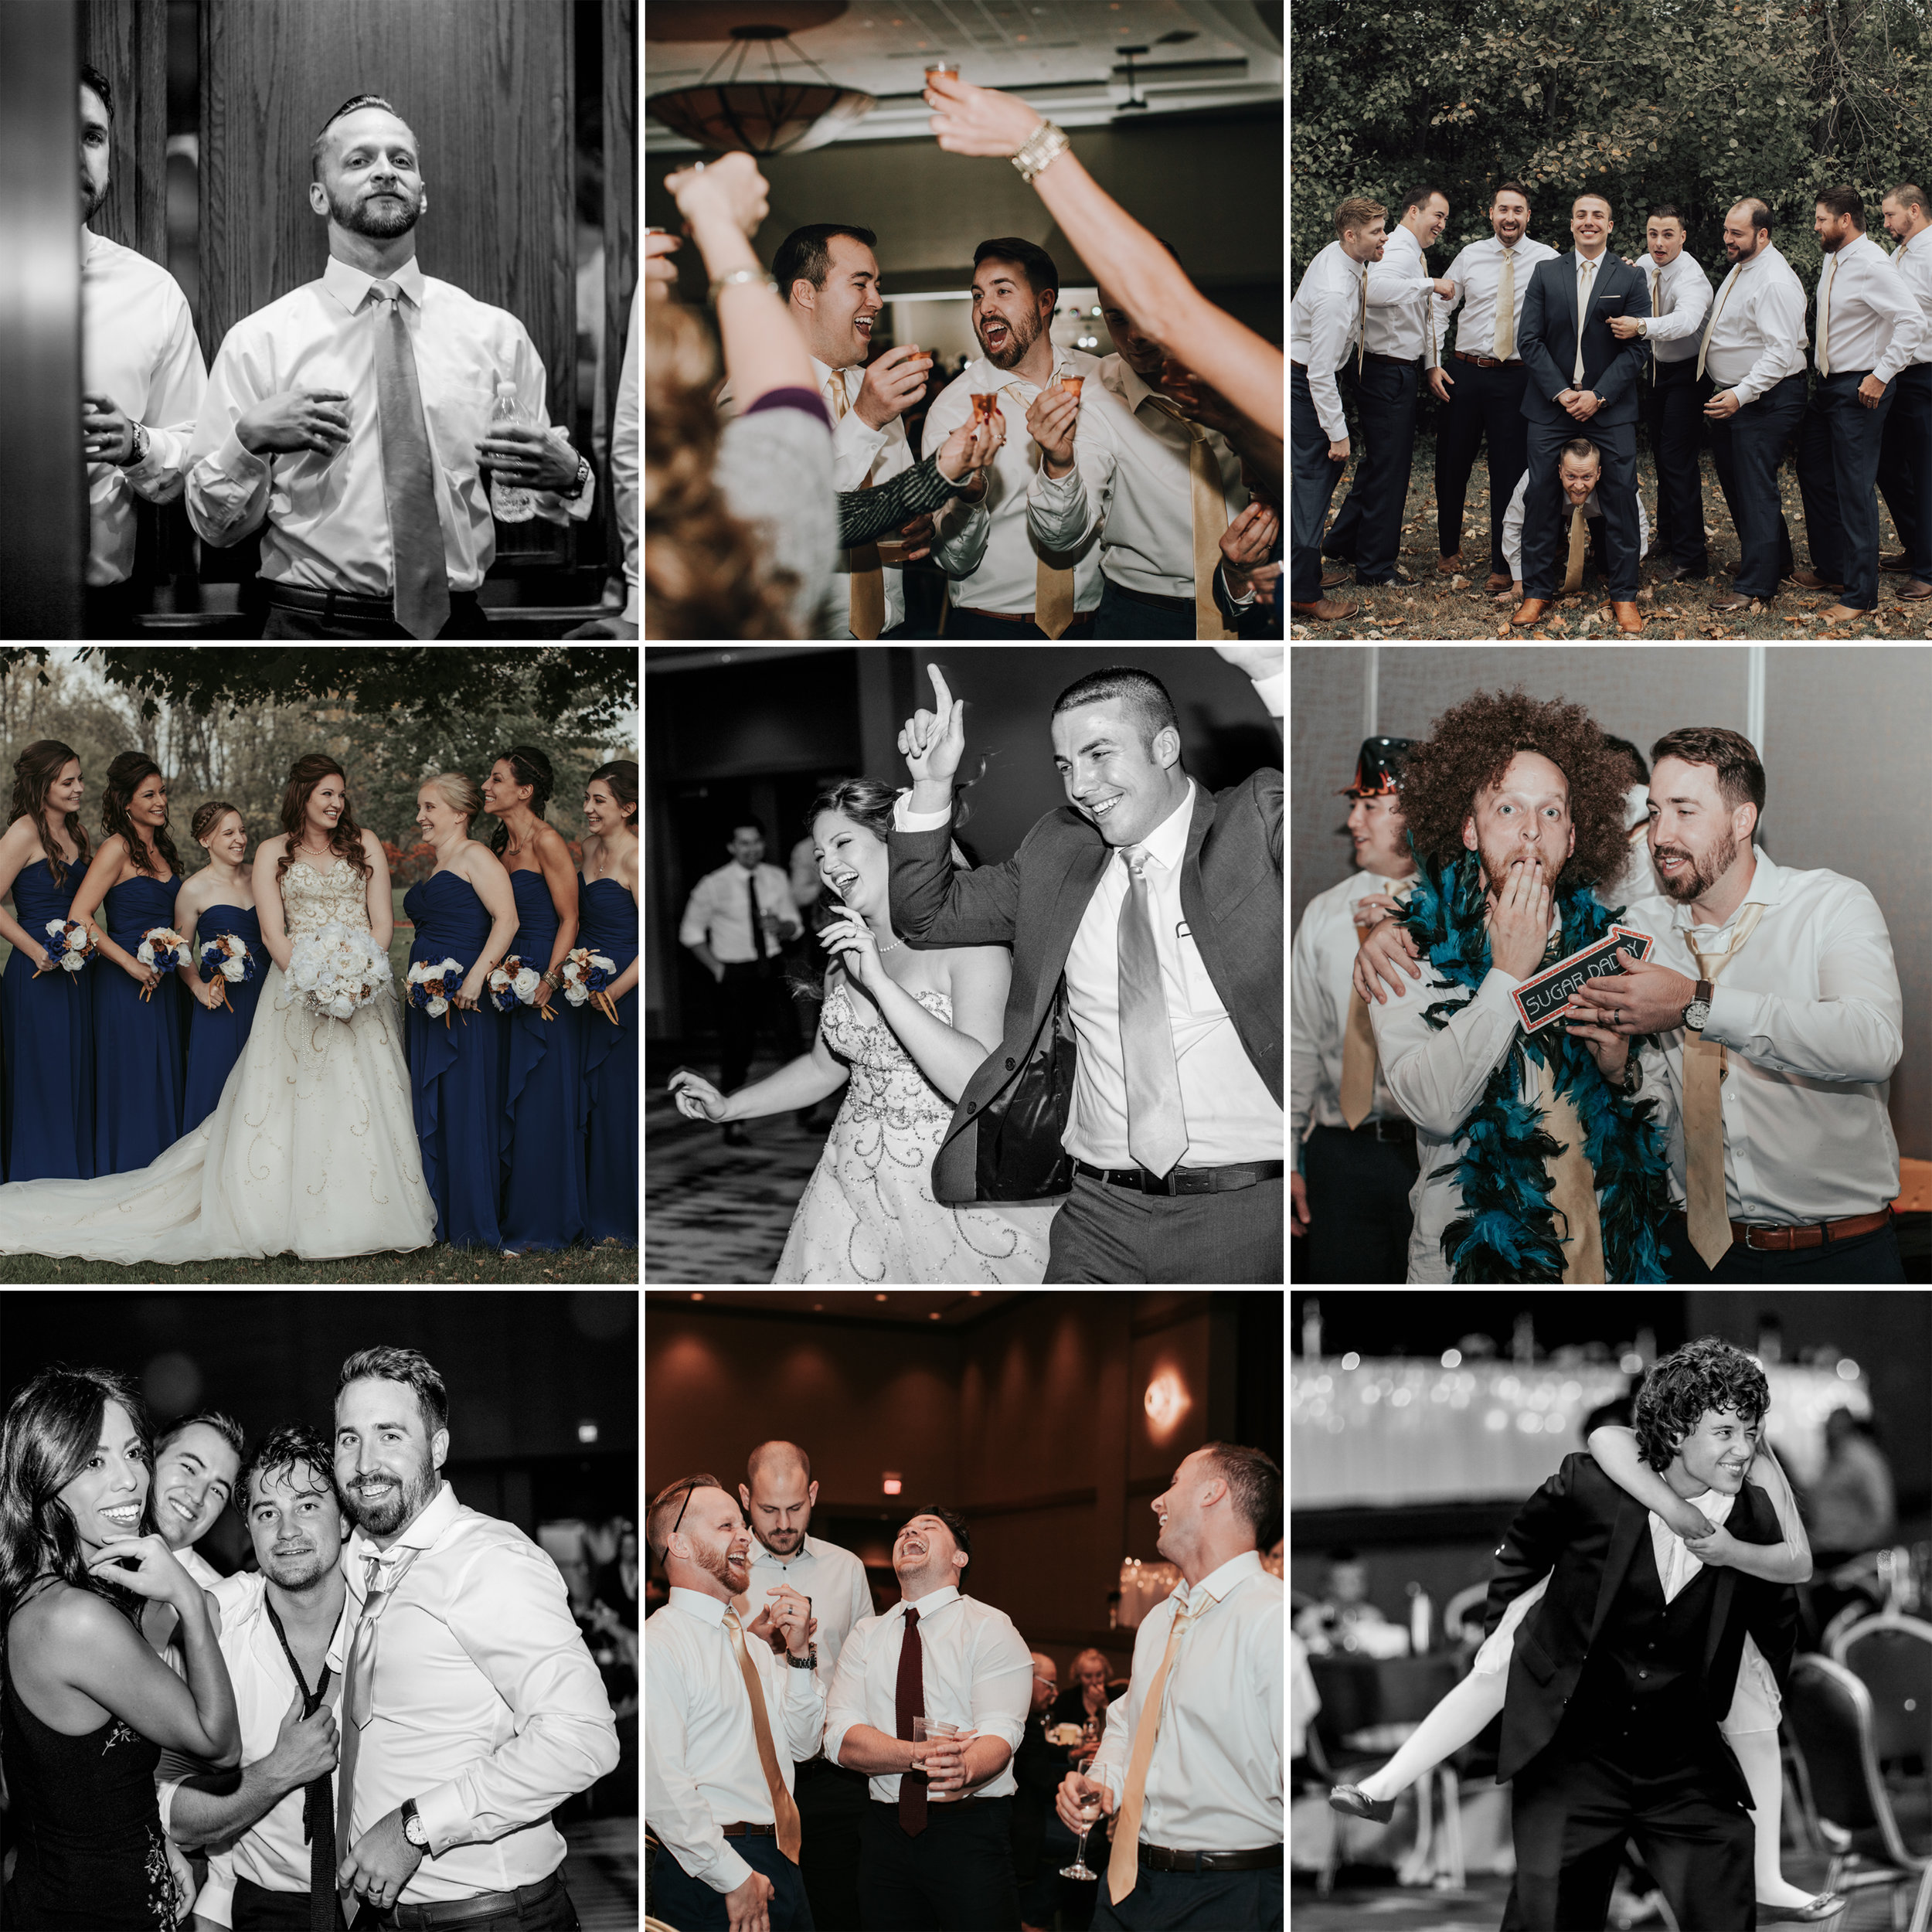 Reception Dancing: Hove Photography LLC